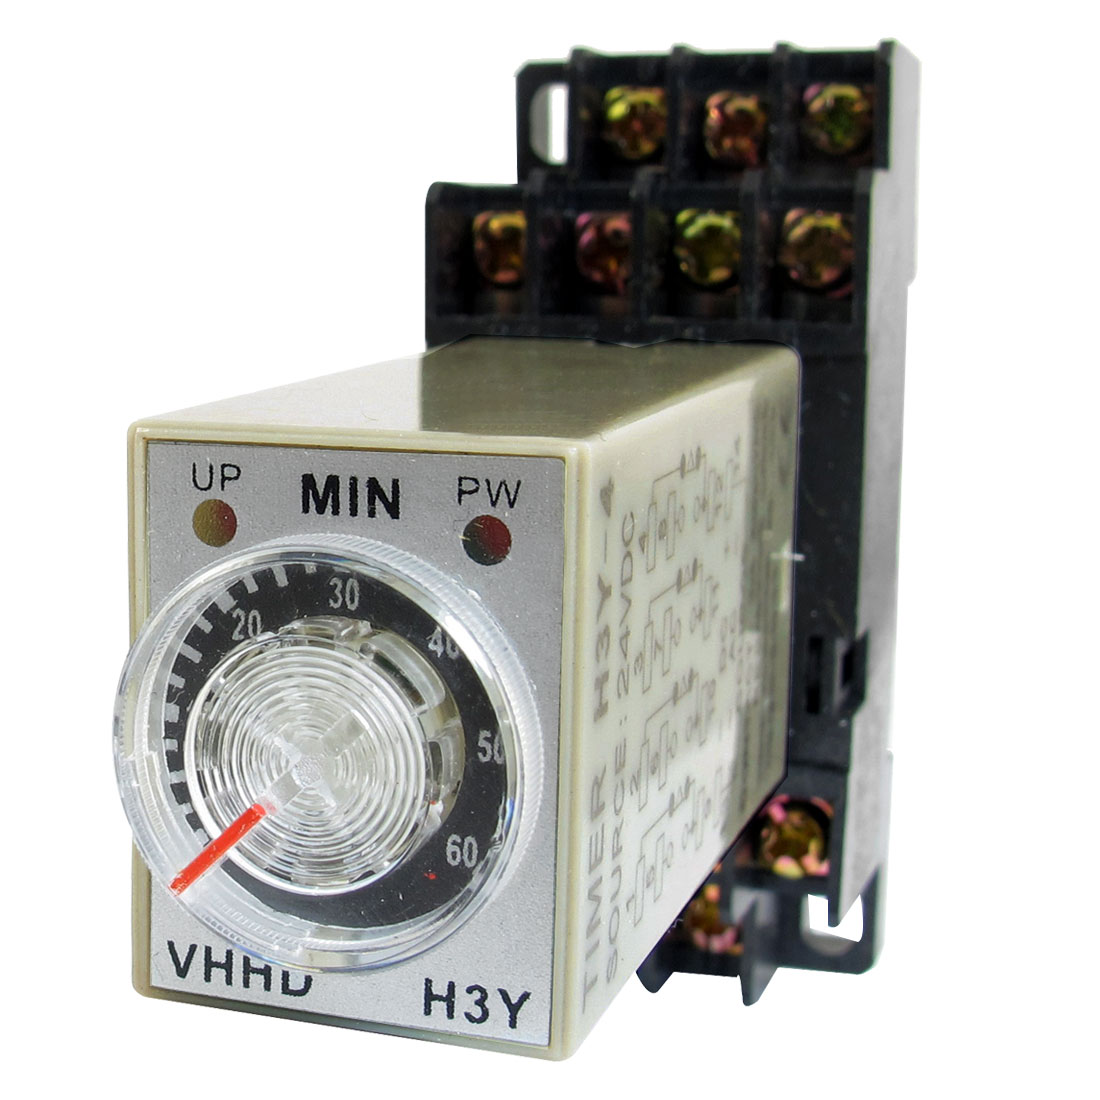 24V 0-60 Minute 60M Timer Power On Delay Time Relay 14 Pin H3y-4 + Socket ac 220v power on delay timer relay and socket asy 3d 99s relays